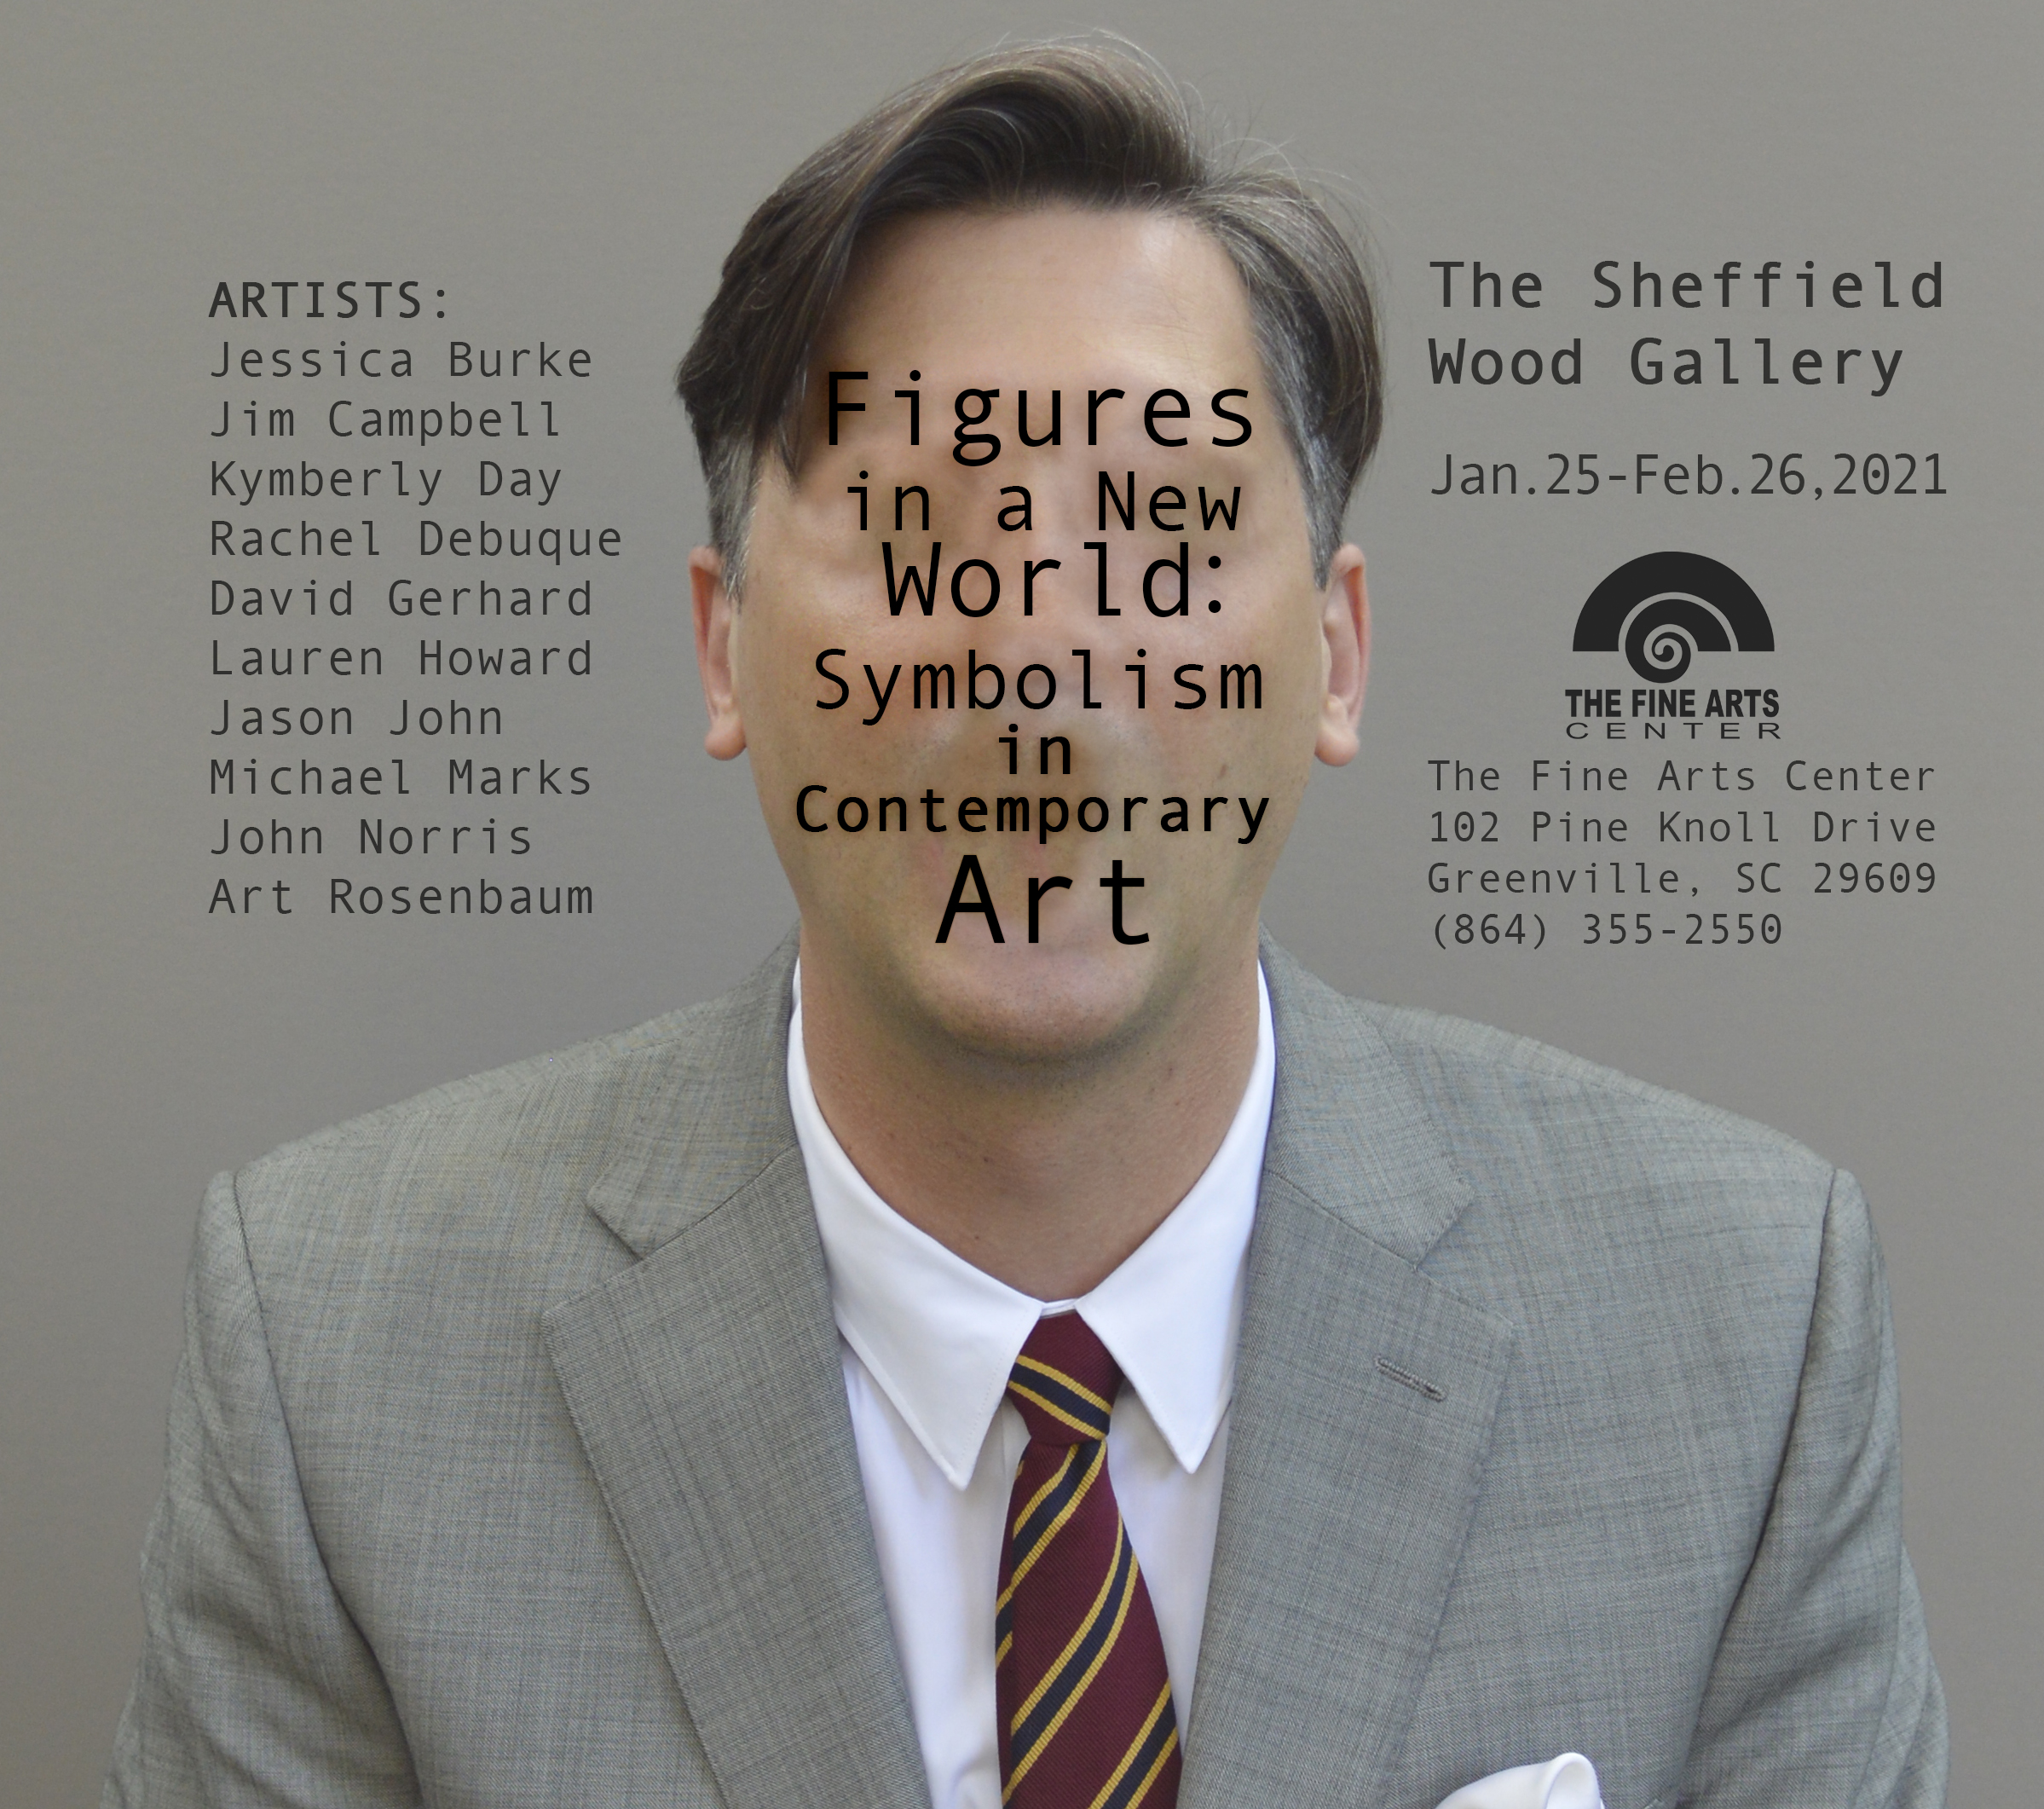 World of Symbolism in Contemporary Art